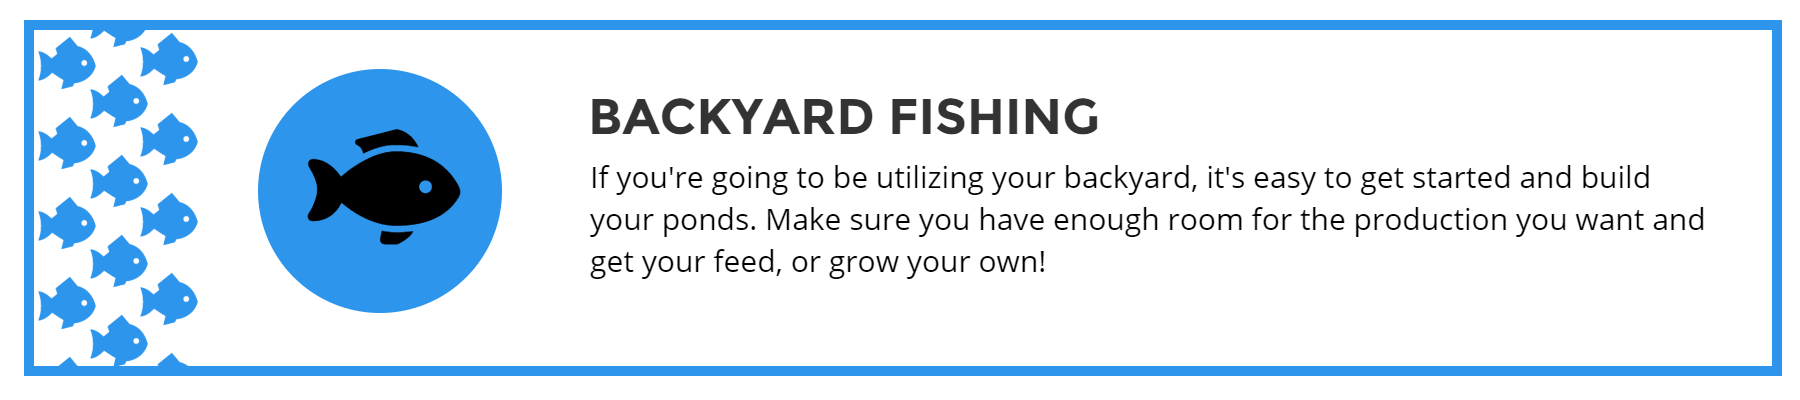 How To Start Your Own Fish Farming Business | Institute of Ecolonomics